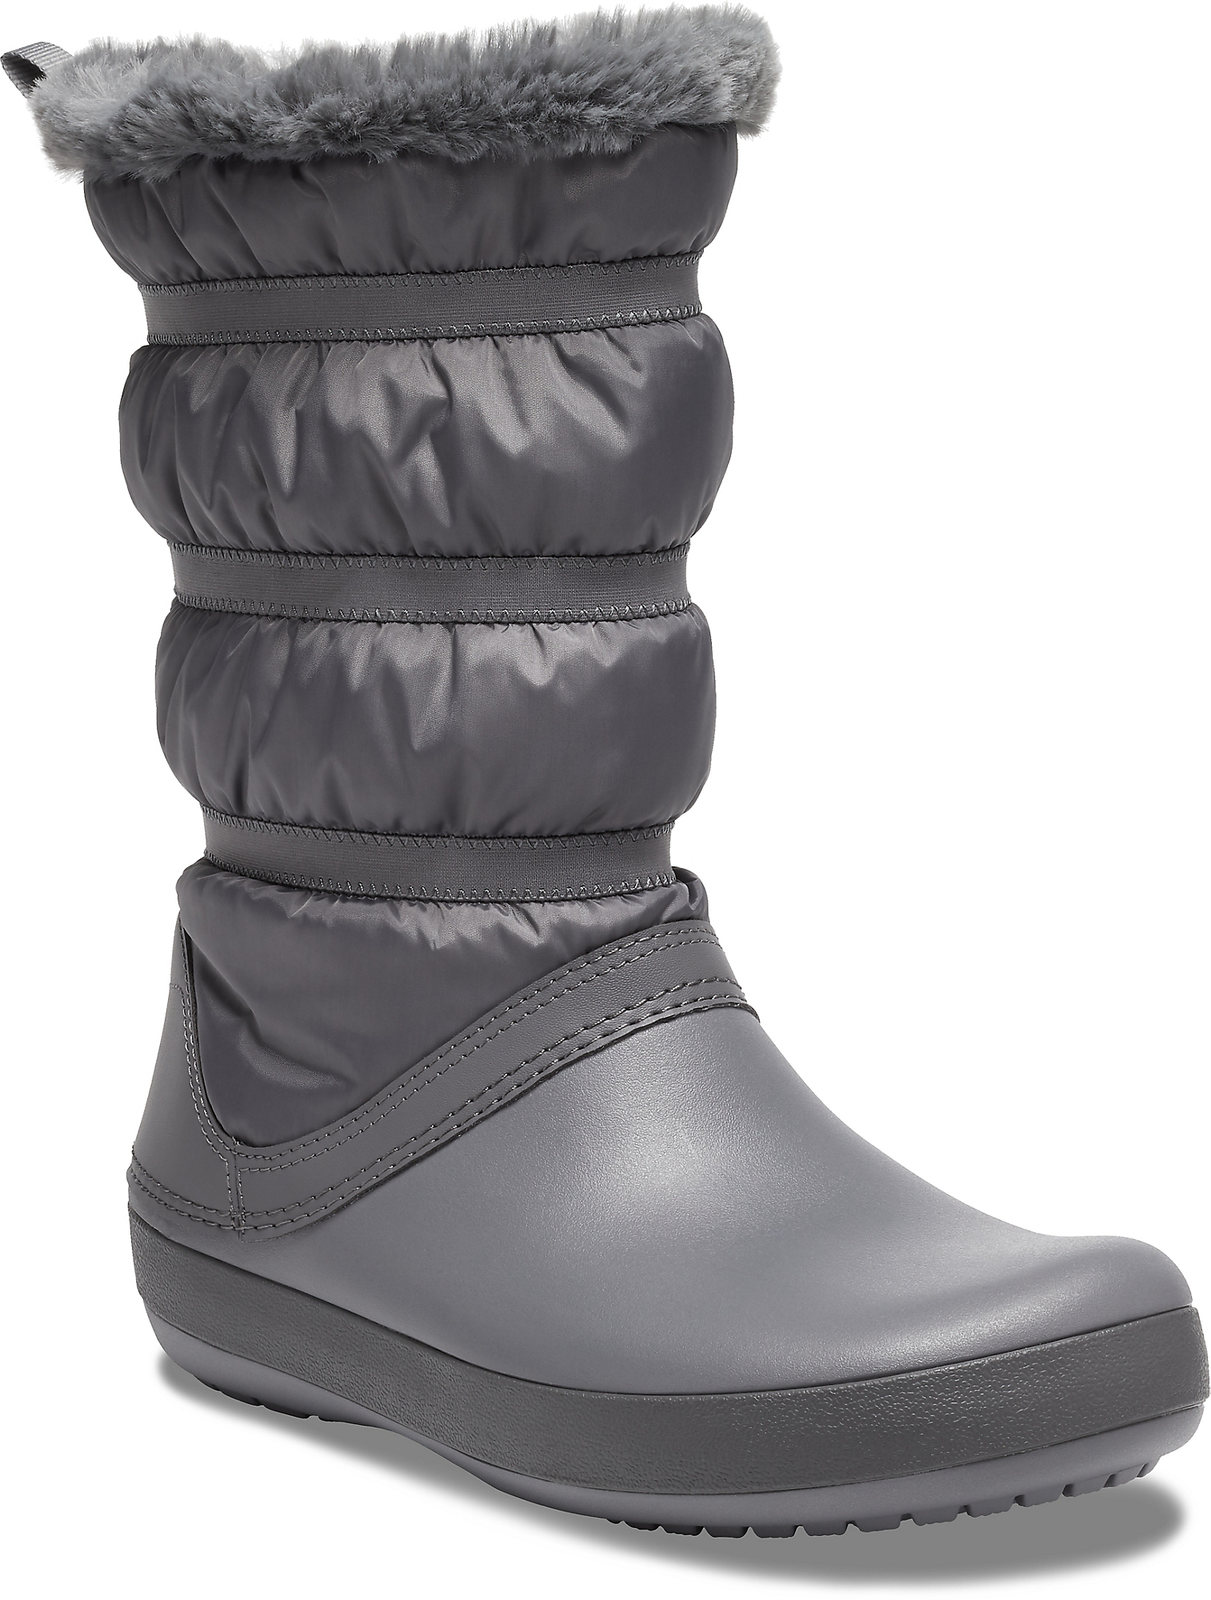 Crocs modré snehule Crocband Winter Boot Charcoal - 37/38